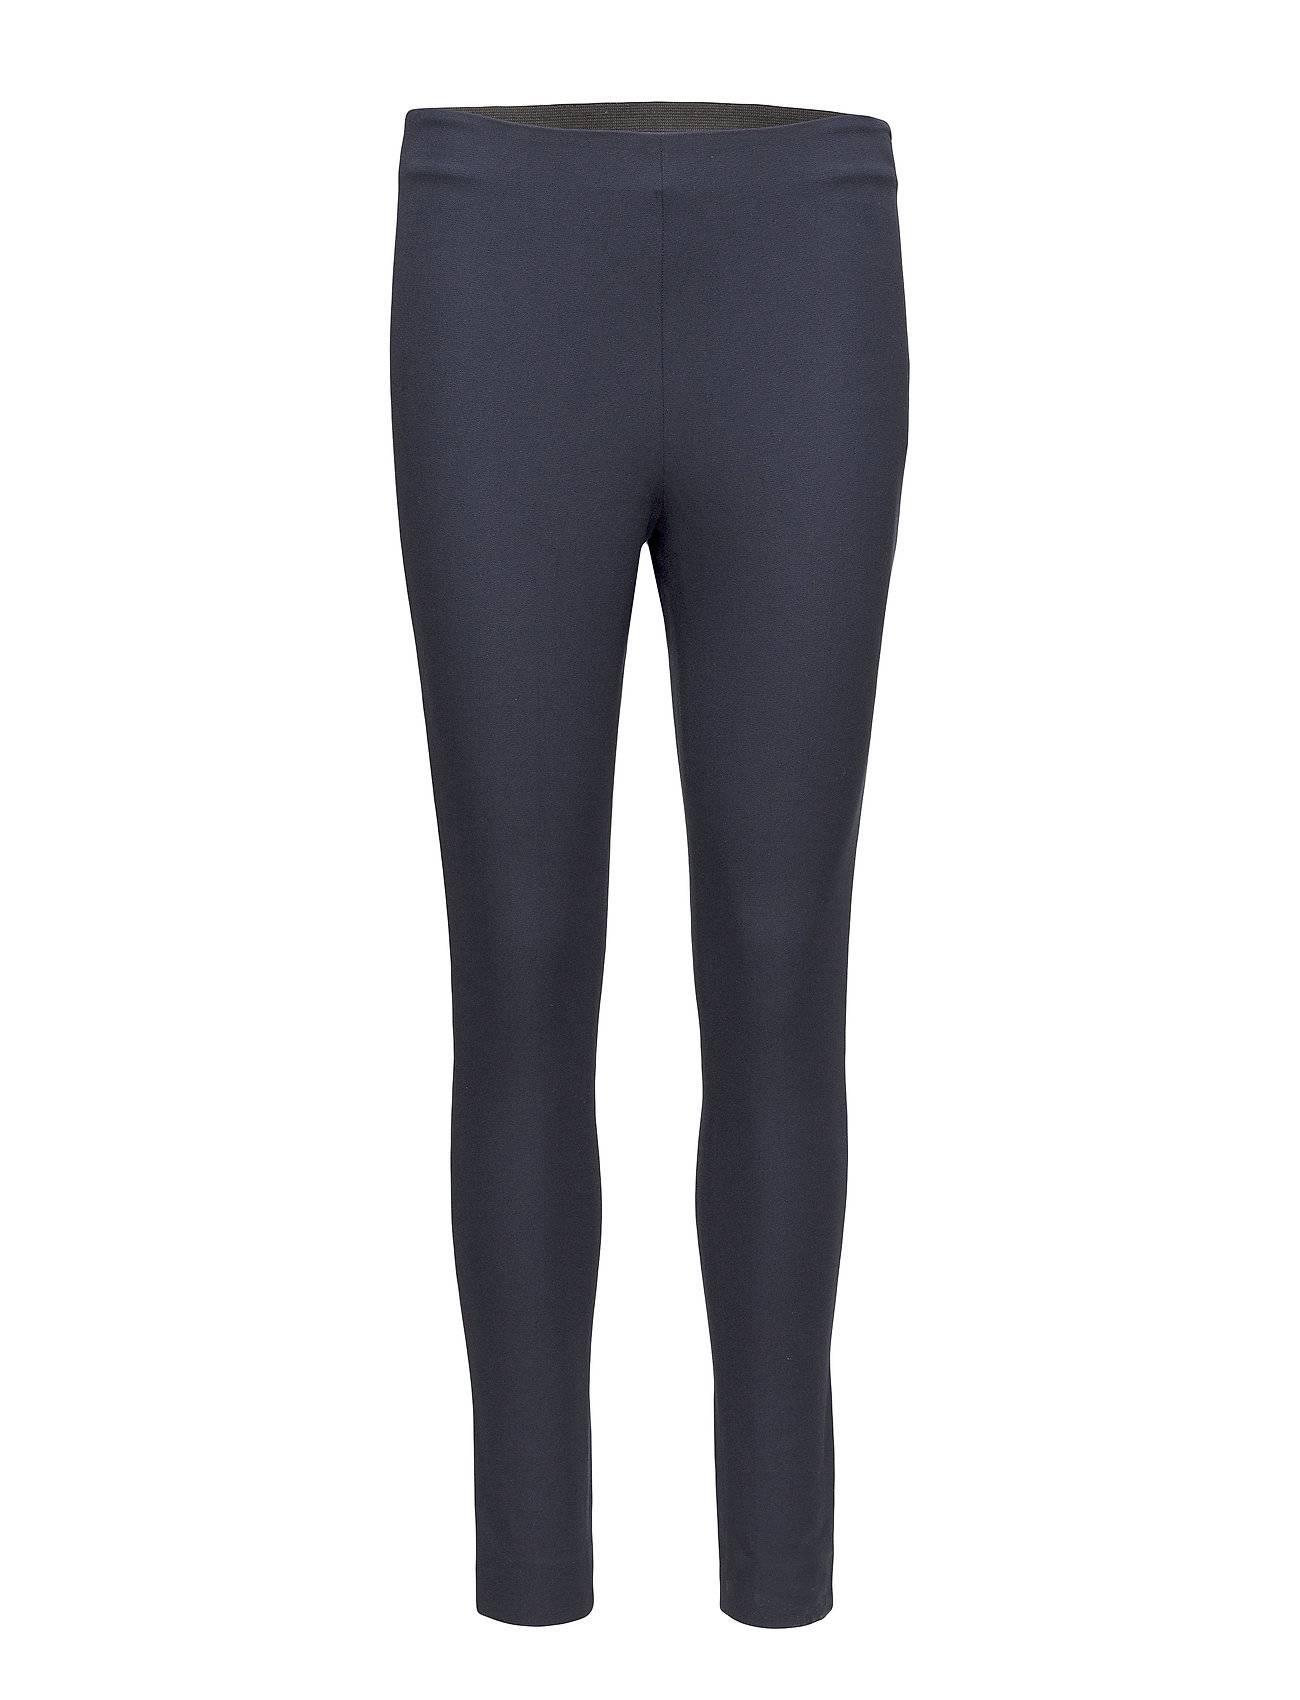 French Connection Street Twill Skinny Trouser